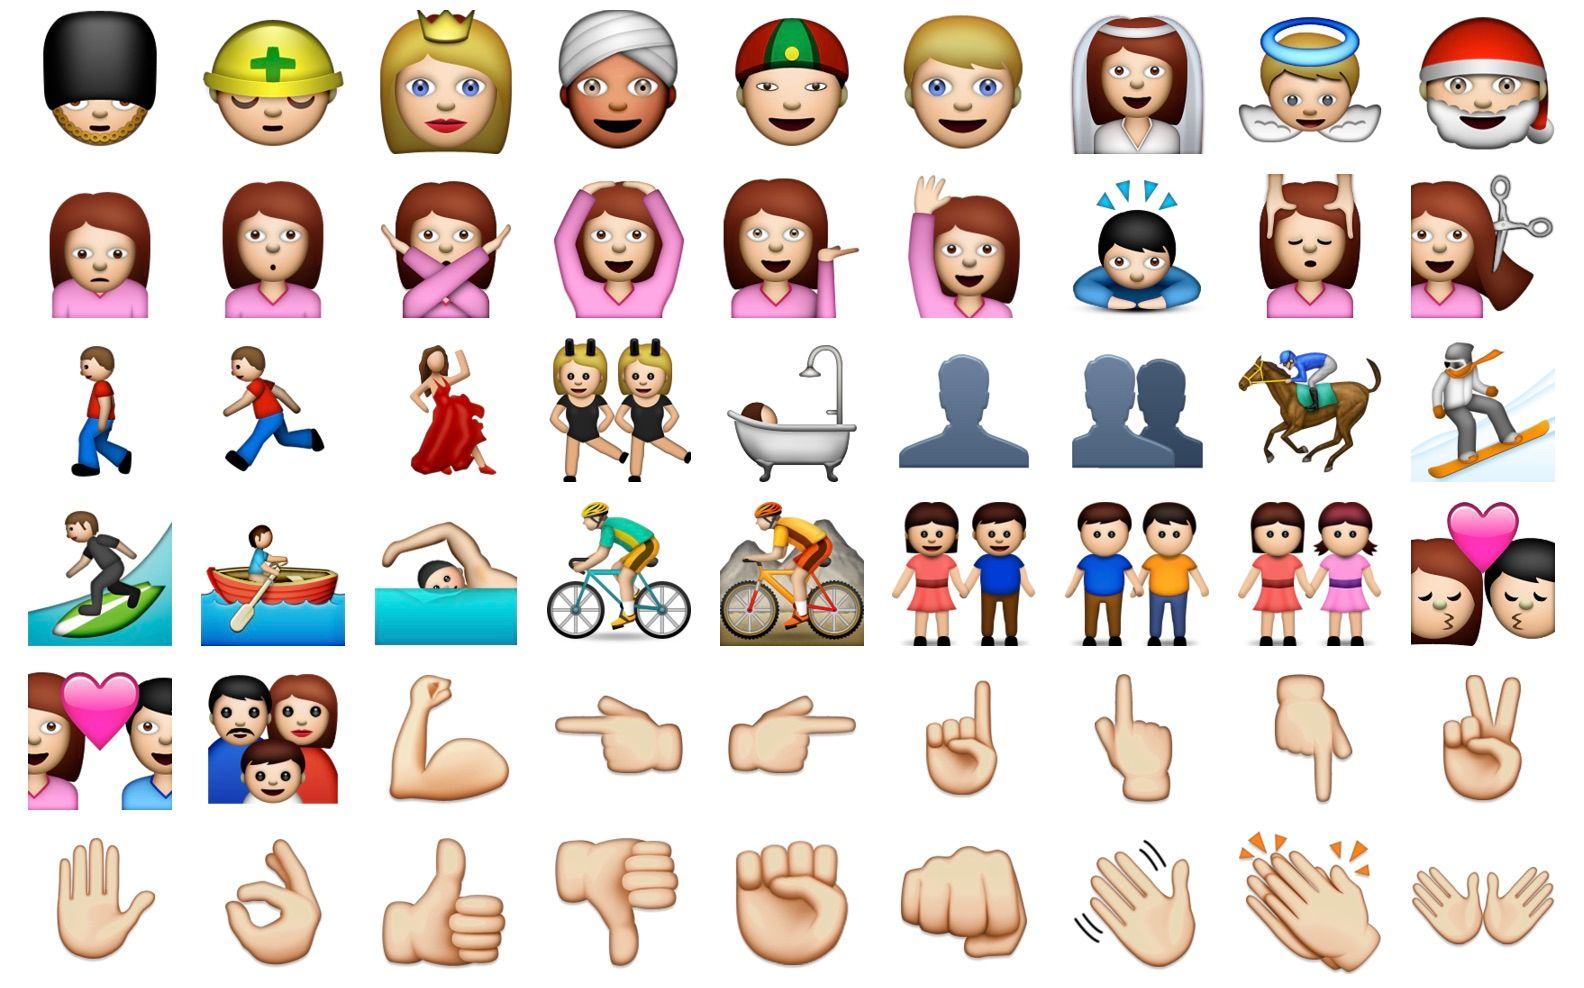 Browse the Emoji Archives